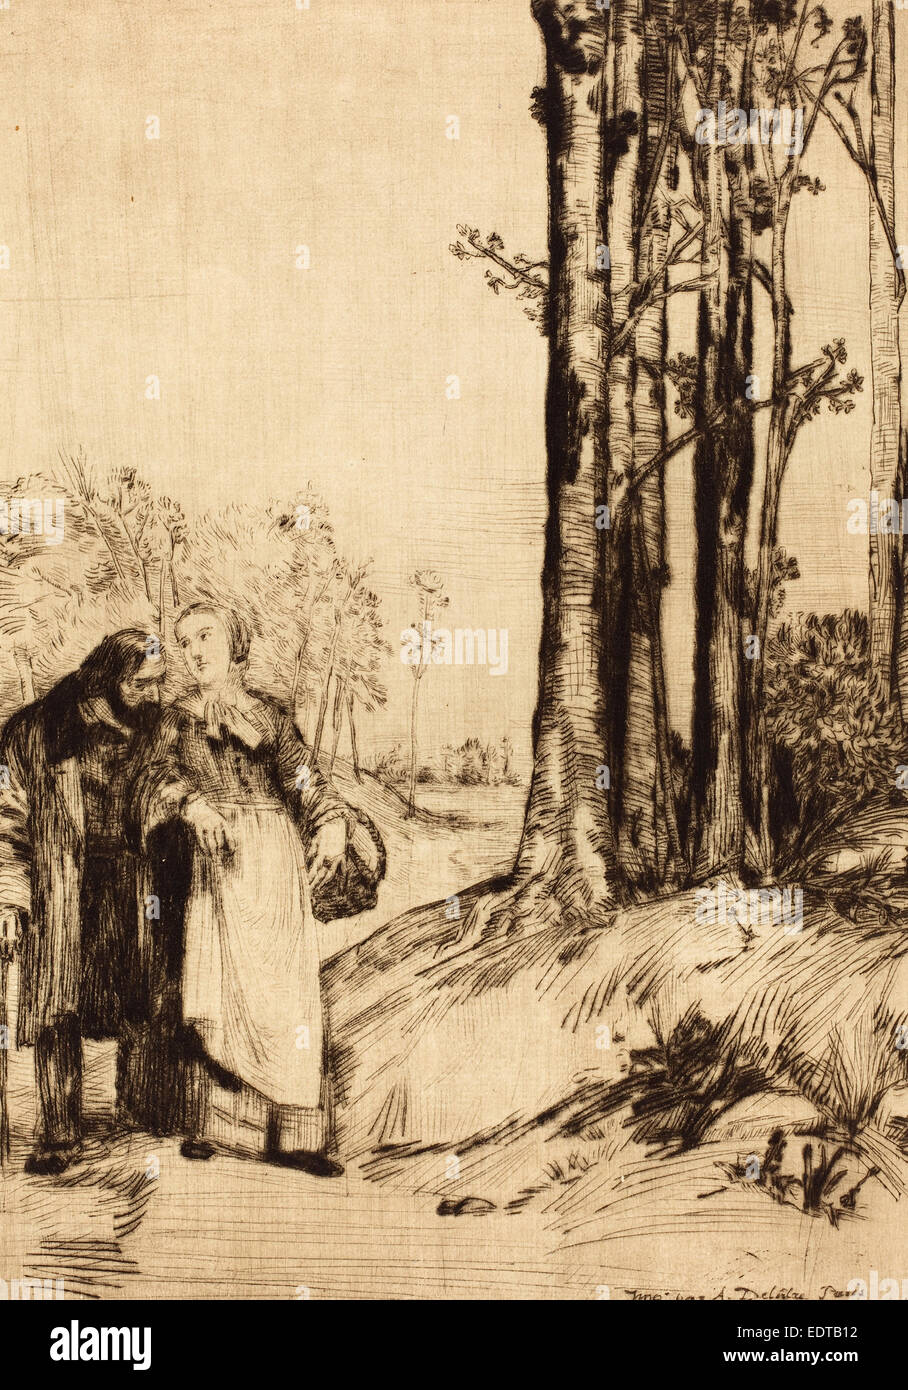 Alphonse Legros, Stroll of the Convalescent (La promenade du convalescent), French, 1837 - 1911, drypoint - Stock Image